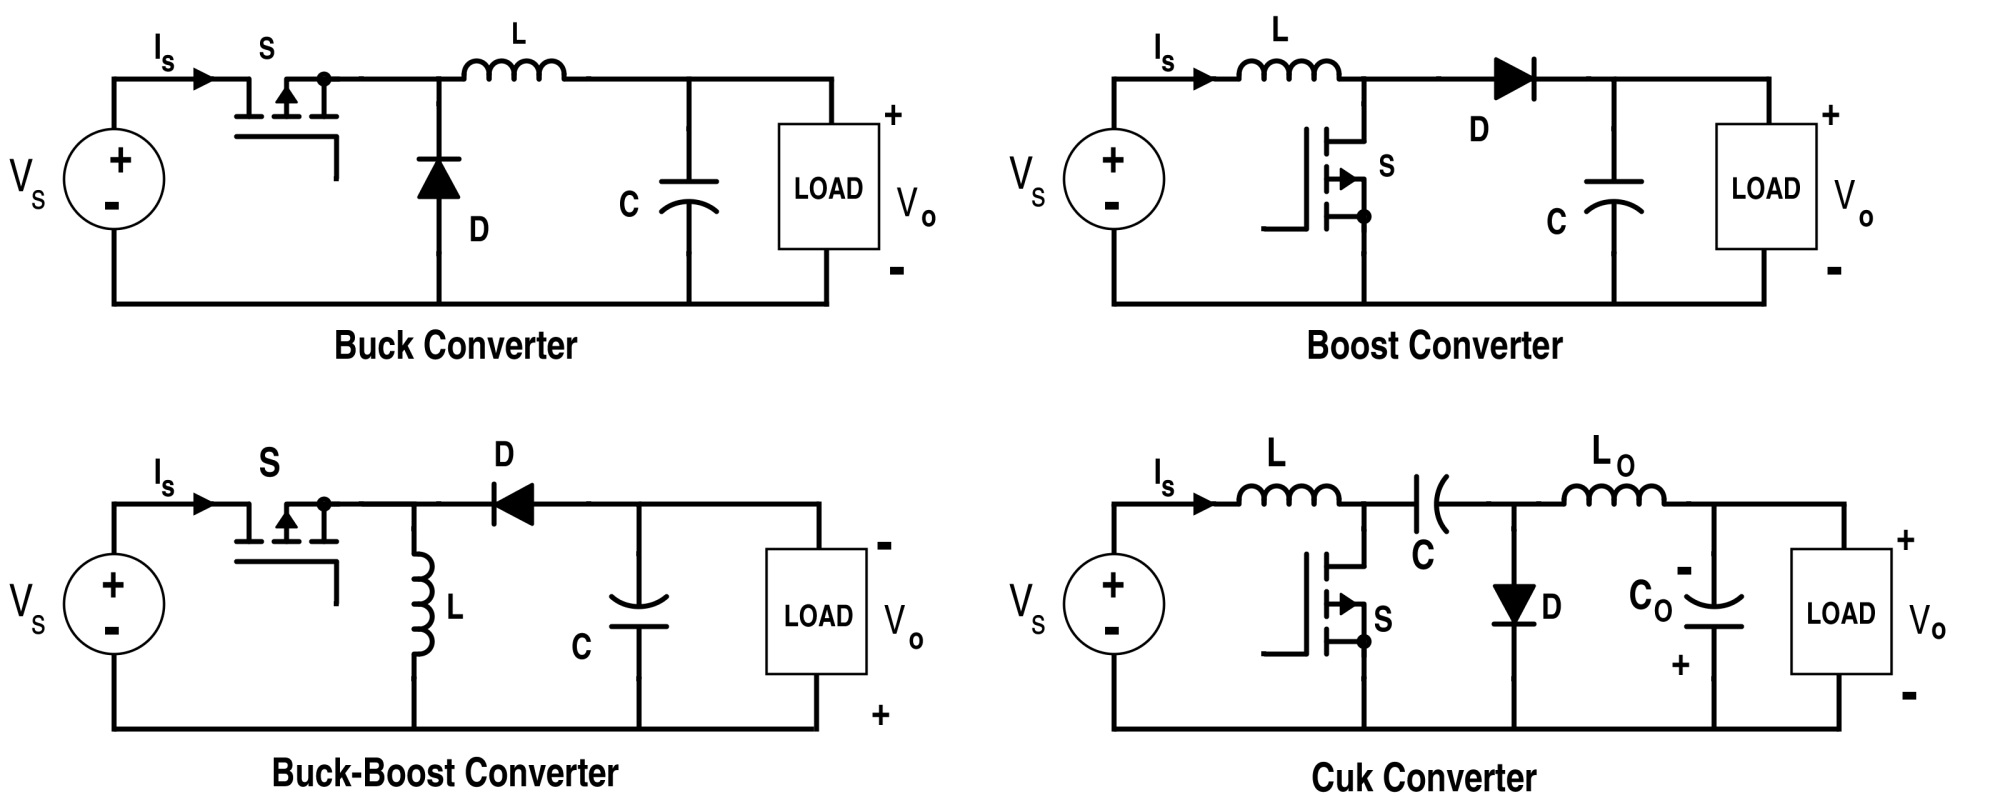 hight resolution of analysis of four dc dc converters in equilibrium dc dc converter circuit diagram step up dc dc converter circuit diagram